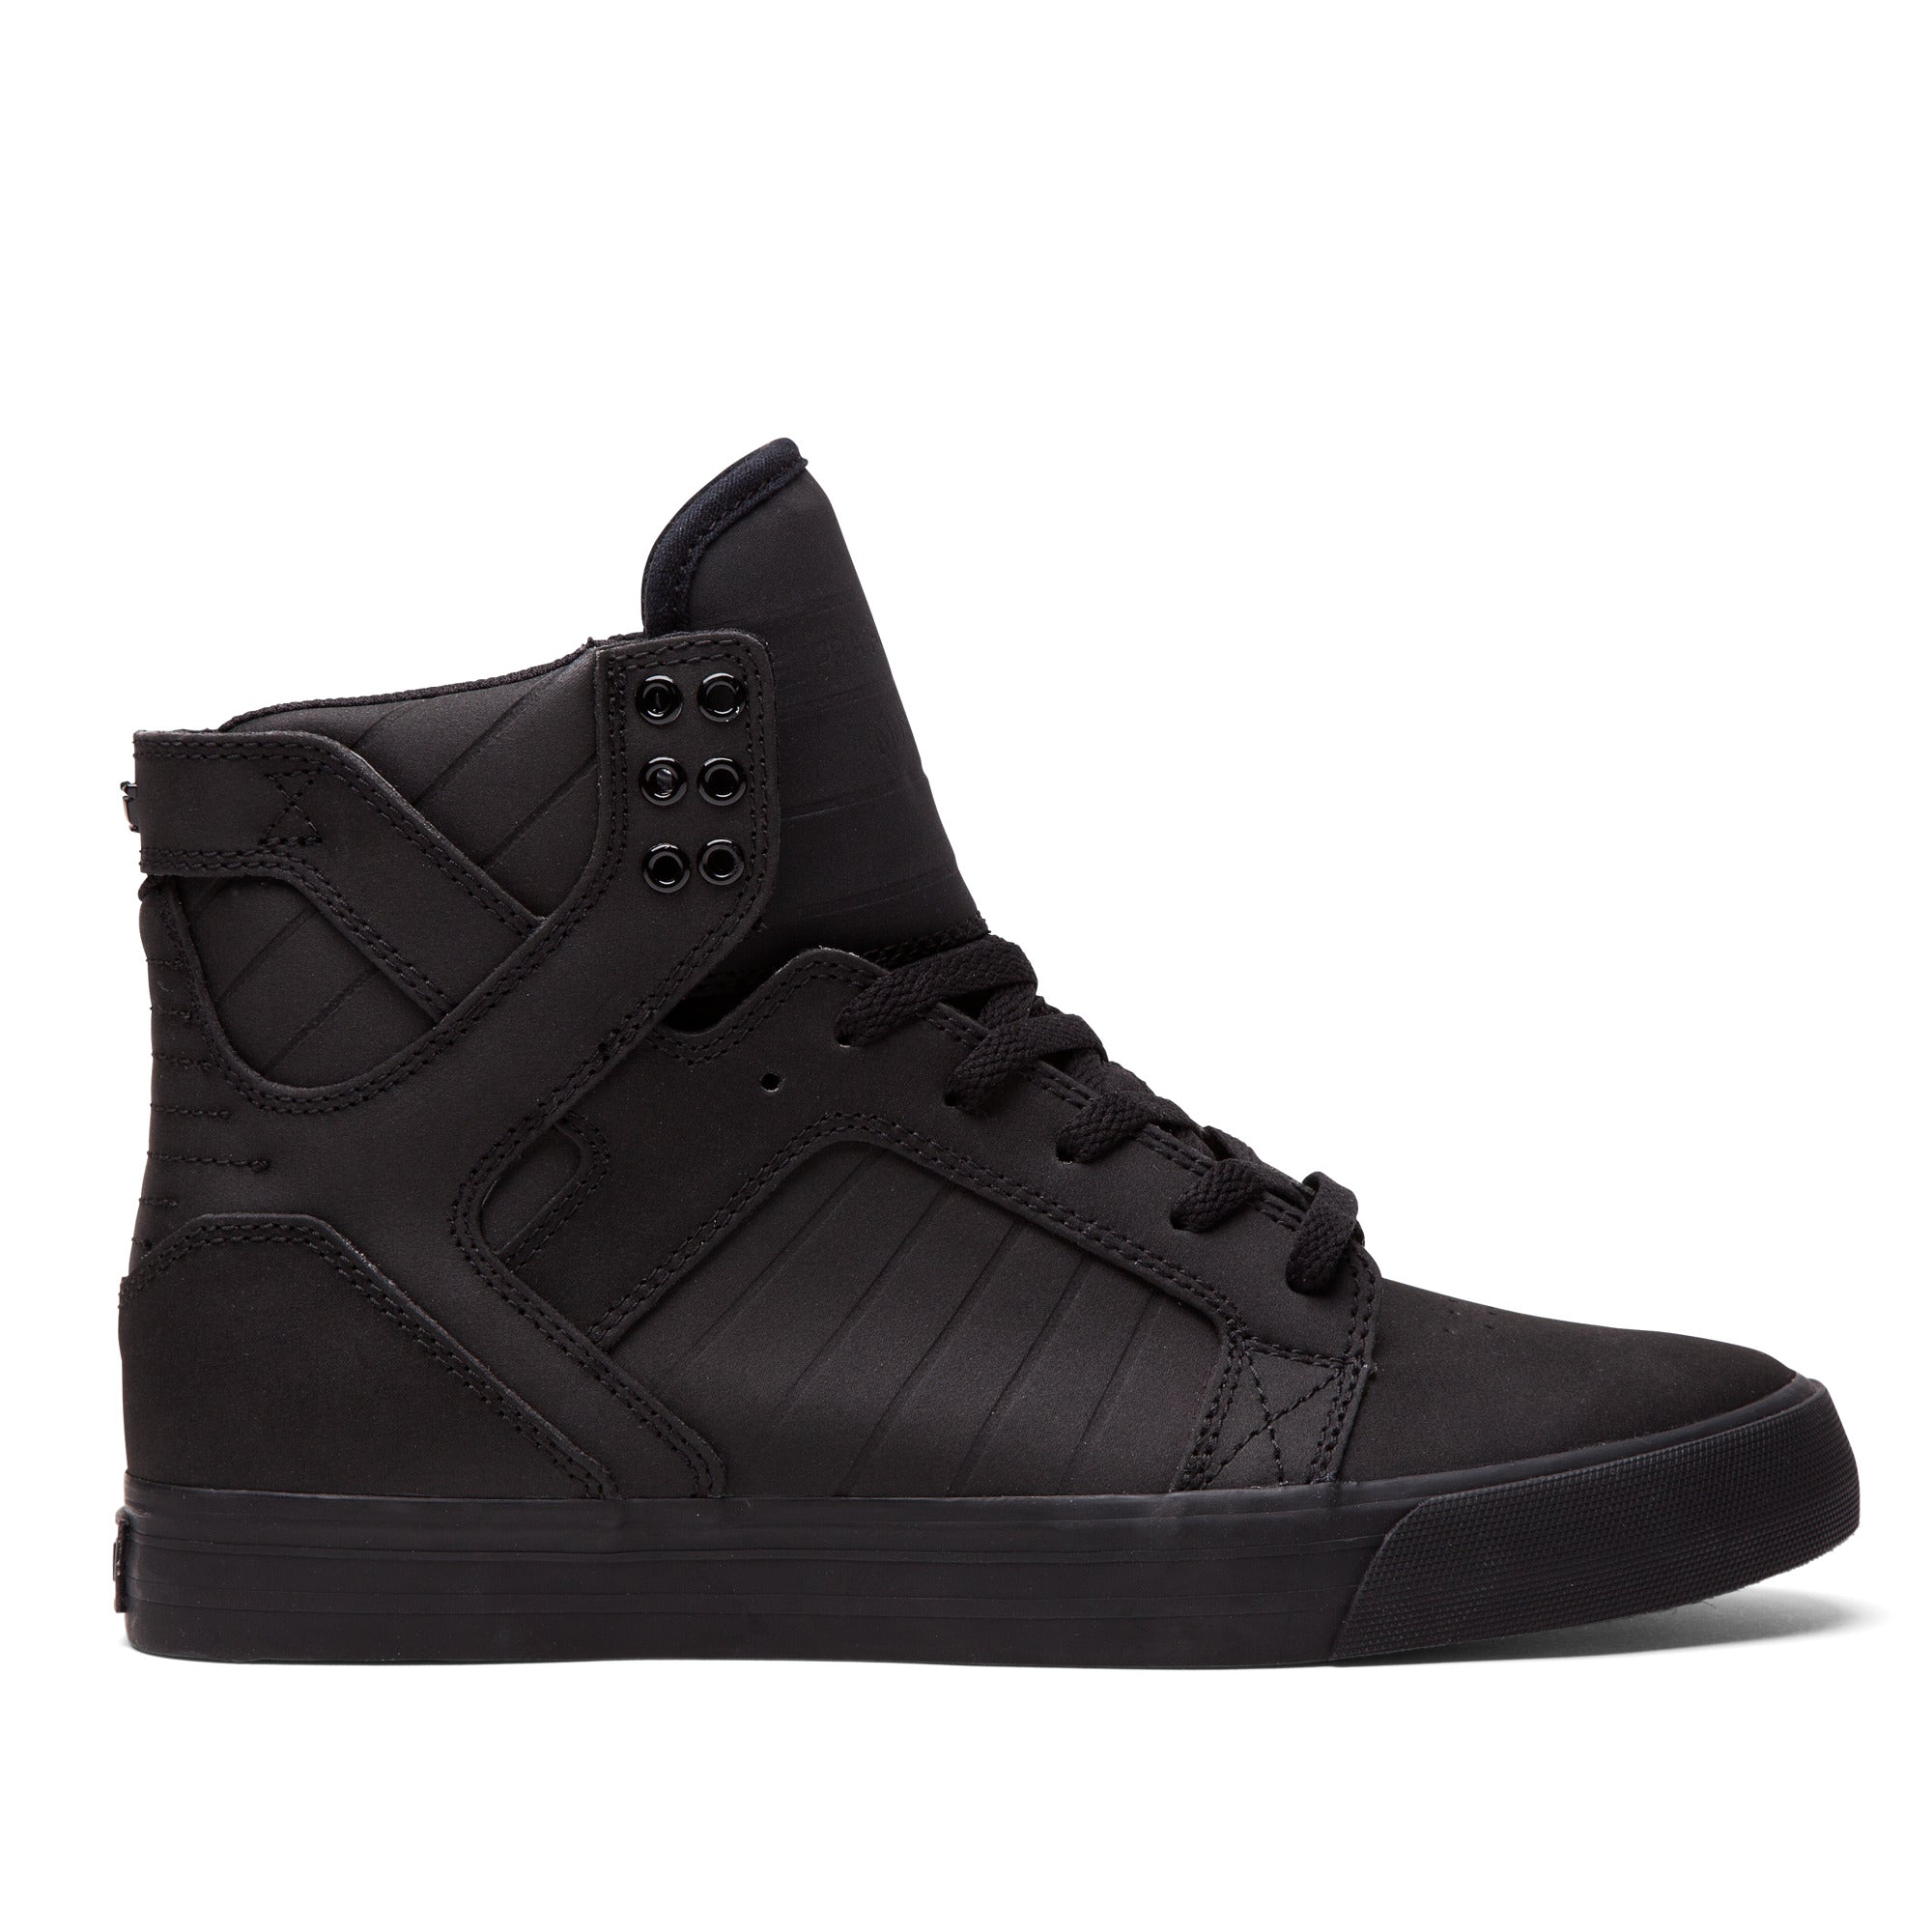 free shipping a96e1 2f827 SKYTOP - Supra Footwear